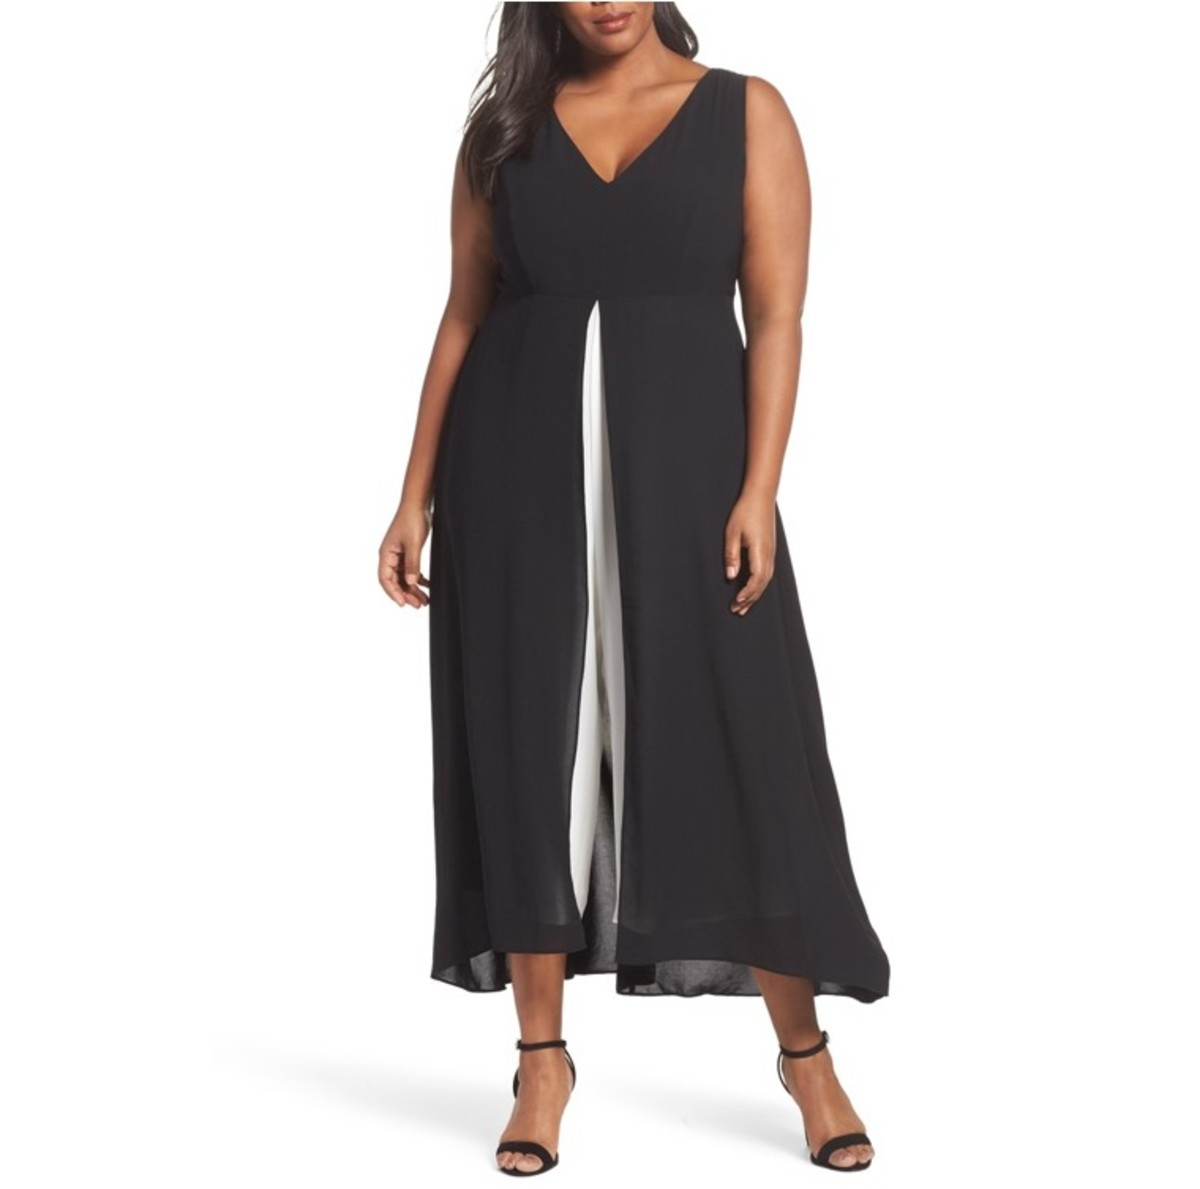 deep V-neck empire-waist black and white jumpsuit